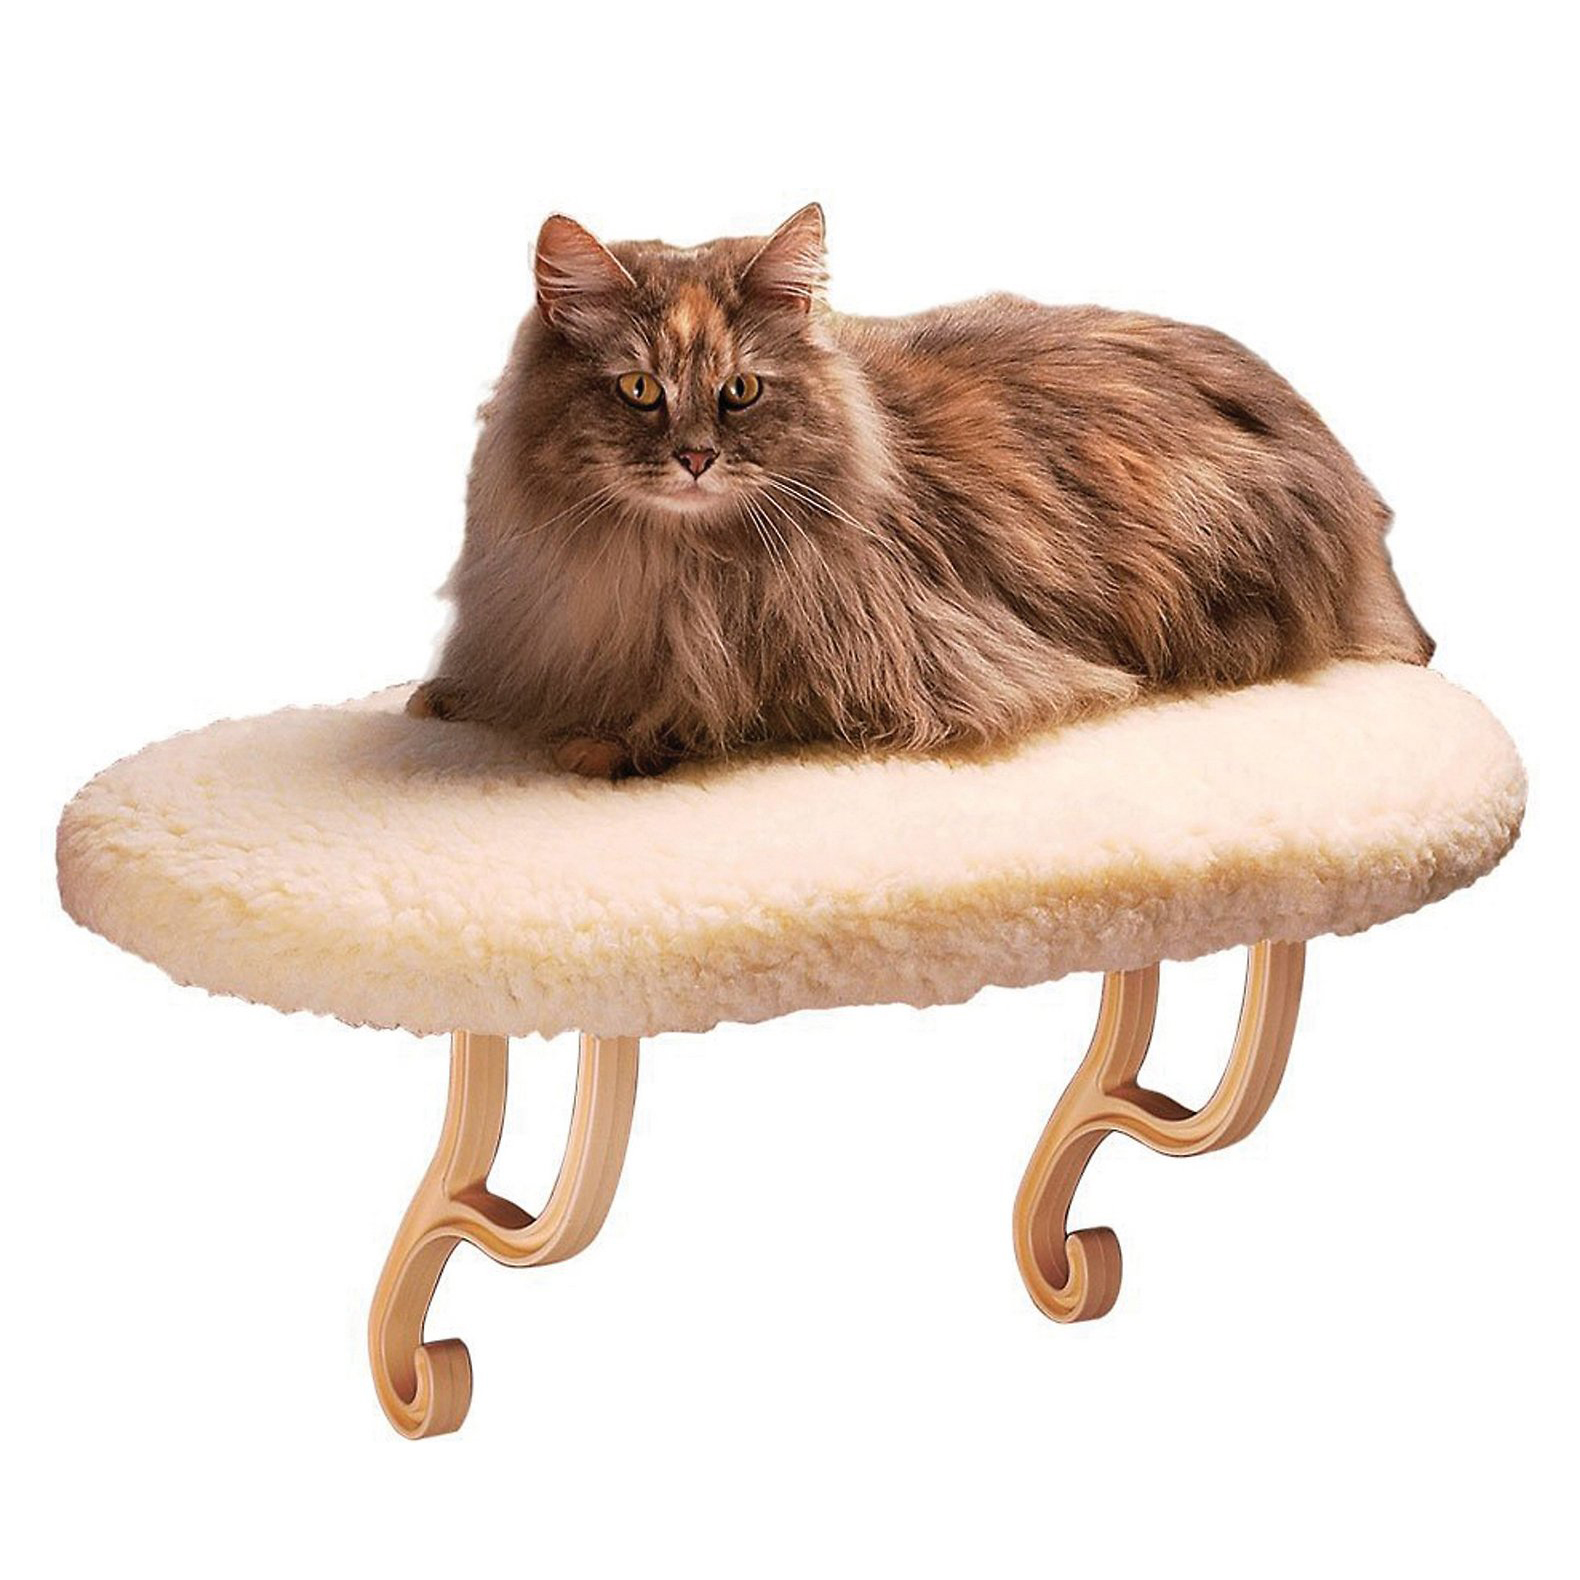 k-and-h-pet-products-kitty-sill-cat-window